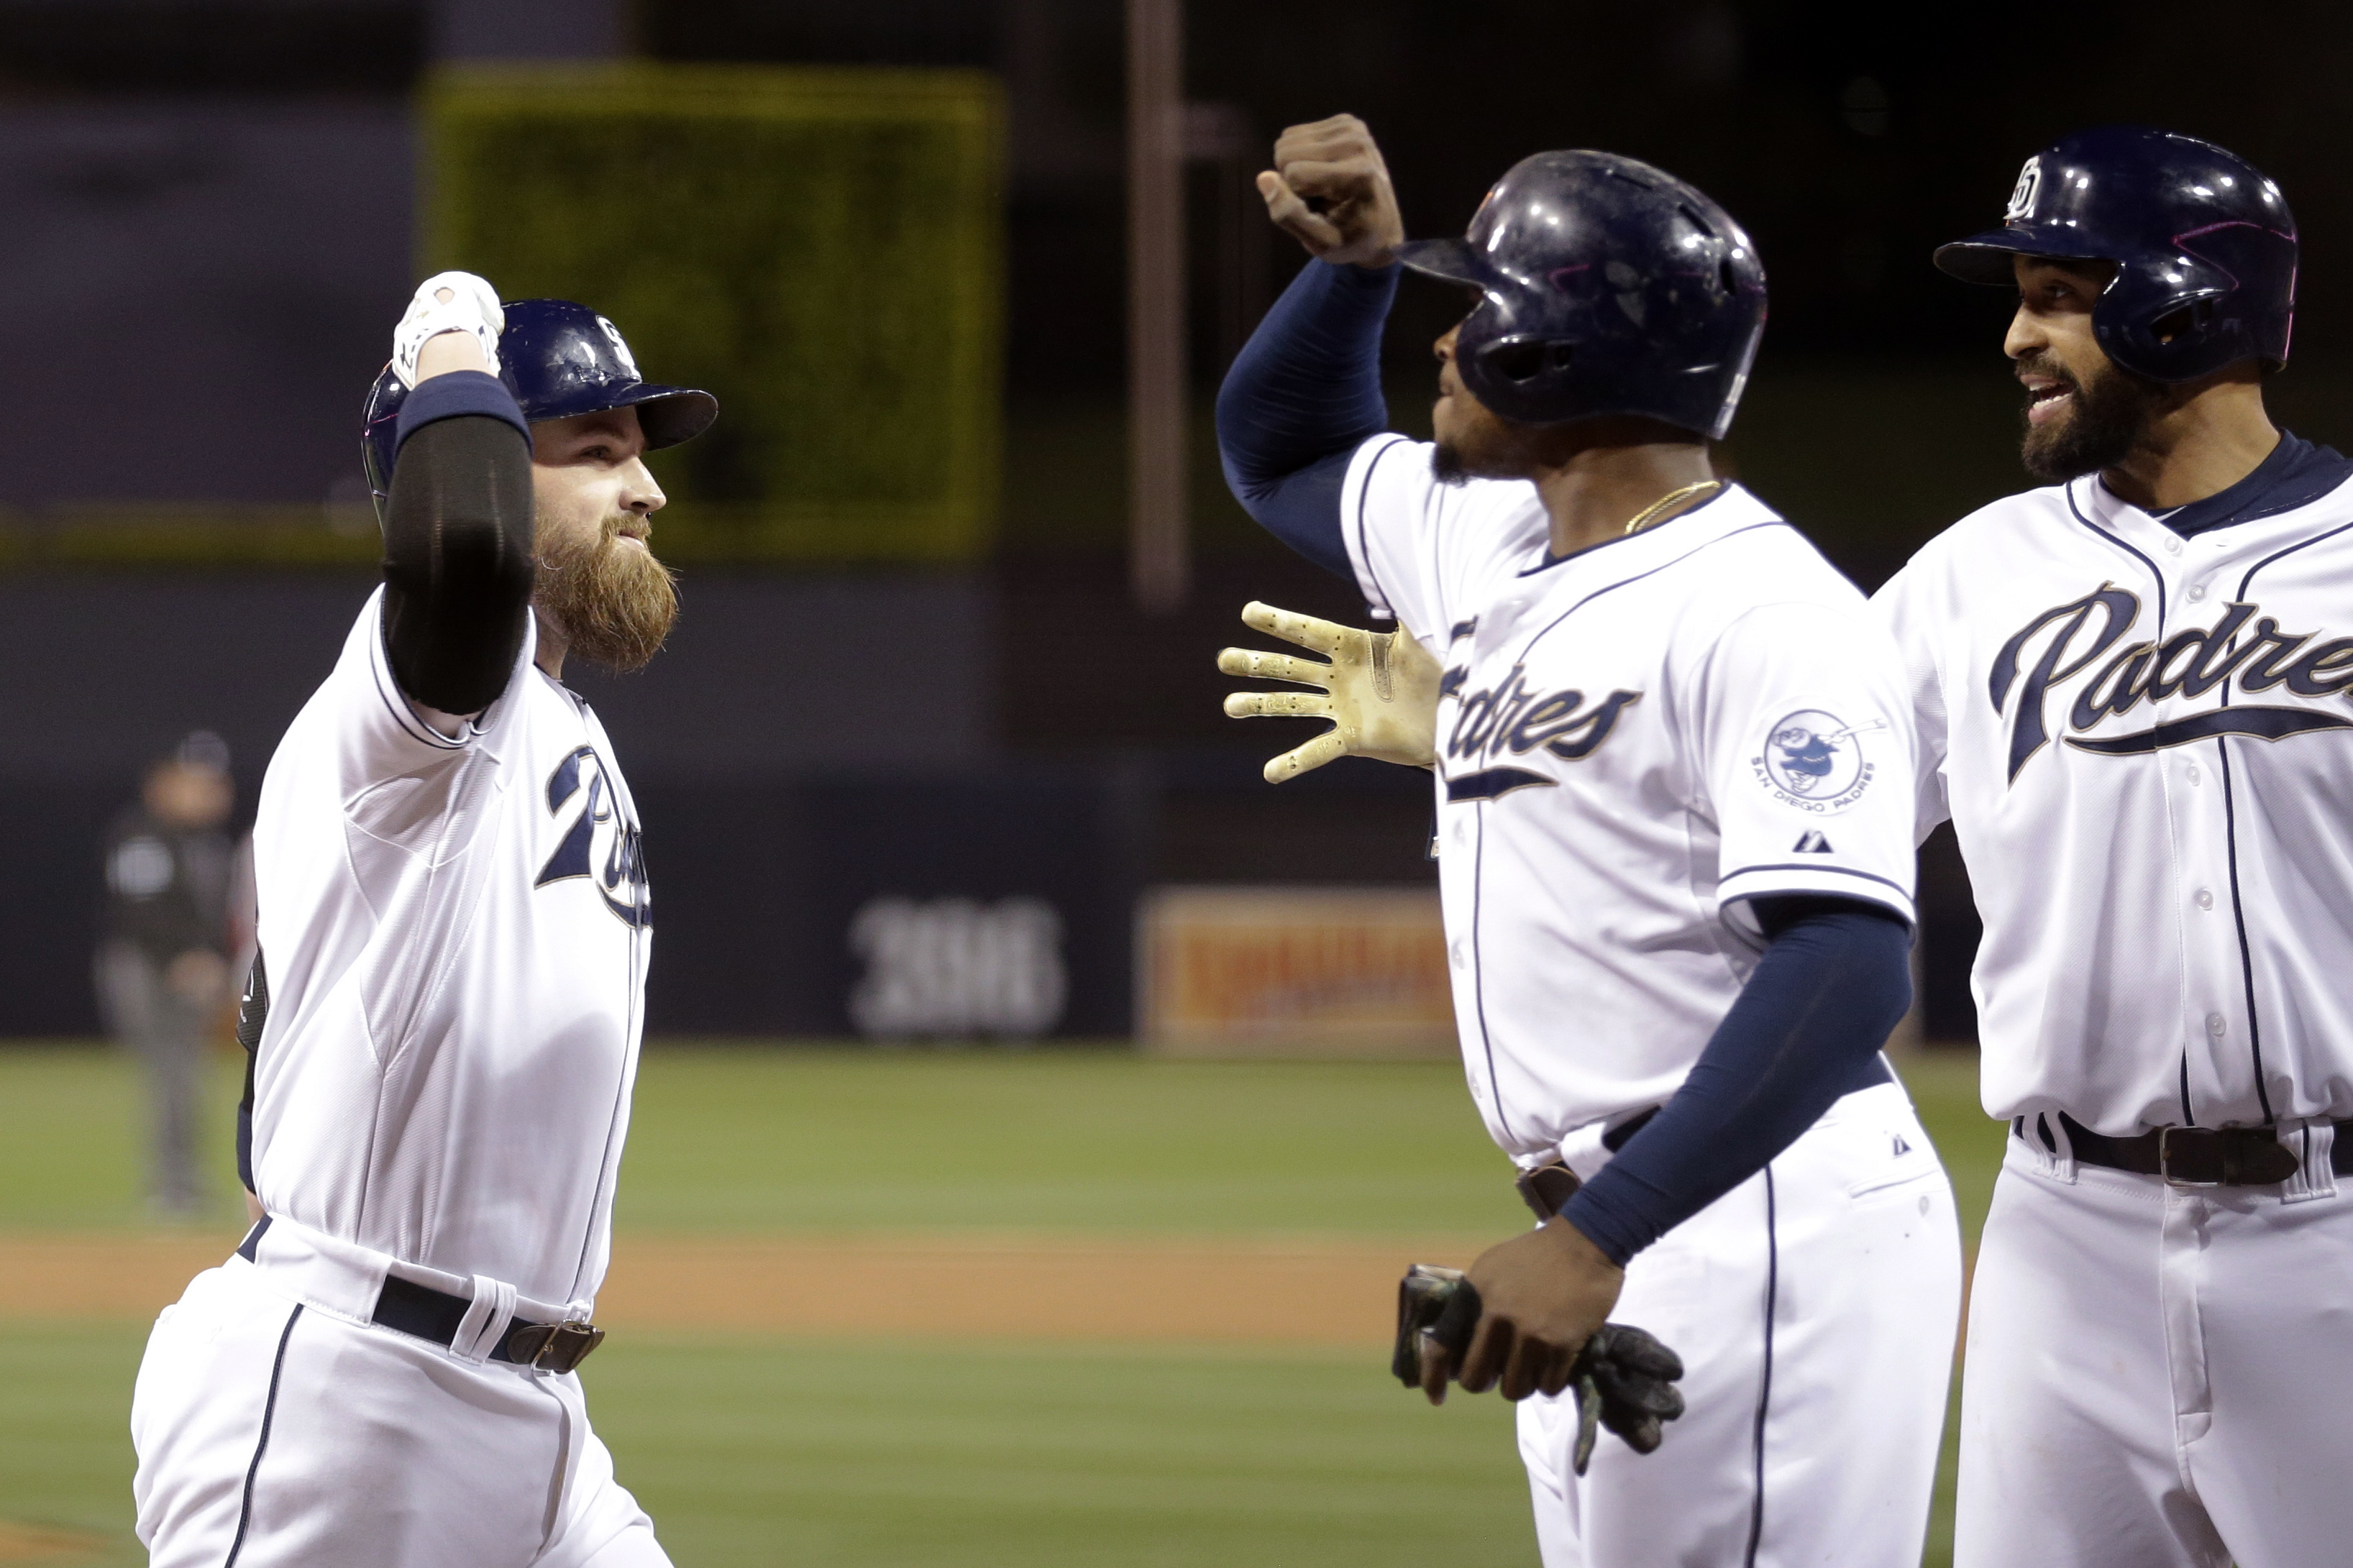 San Diego Padres' Derek Norris, left, is greeted by teammates after hitting a three-run home run, driving in Matt Kemp, right, and Justin Upton, center, against the Washington Nationals during the first inning in a baseball game Thursday, May 14, 2015, in